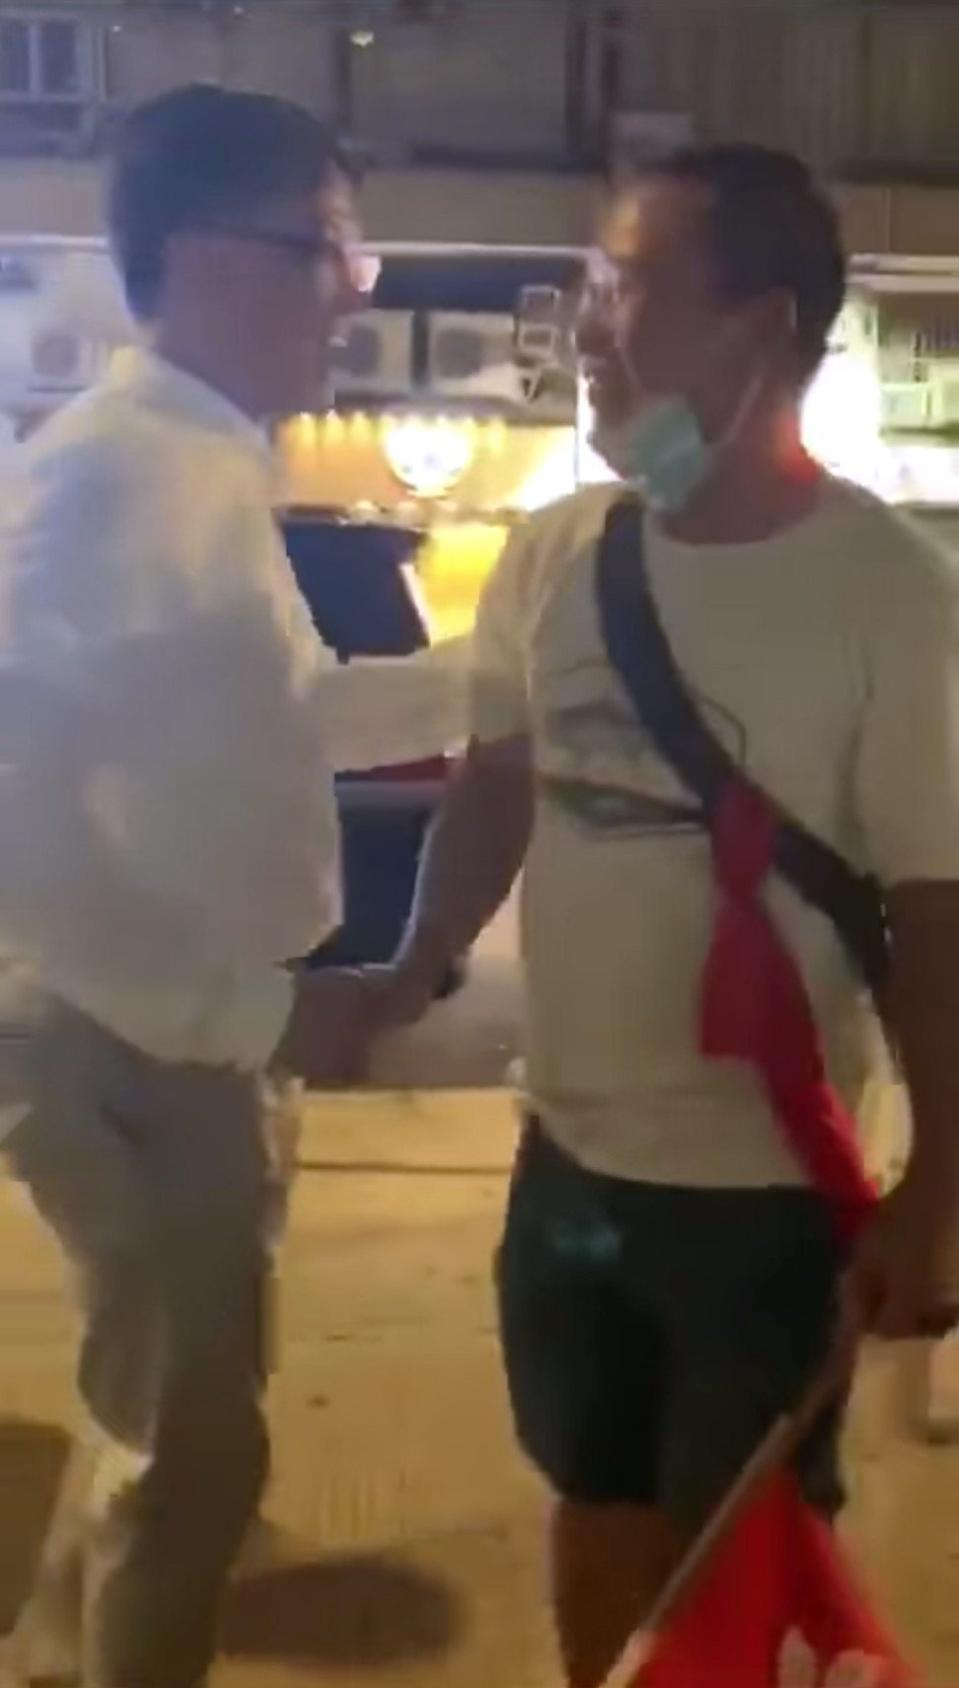 Junius Ho (left) shakes hands with a man in a white T-shirt in Yuen Long. Photo: Facebook